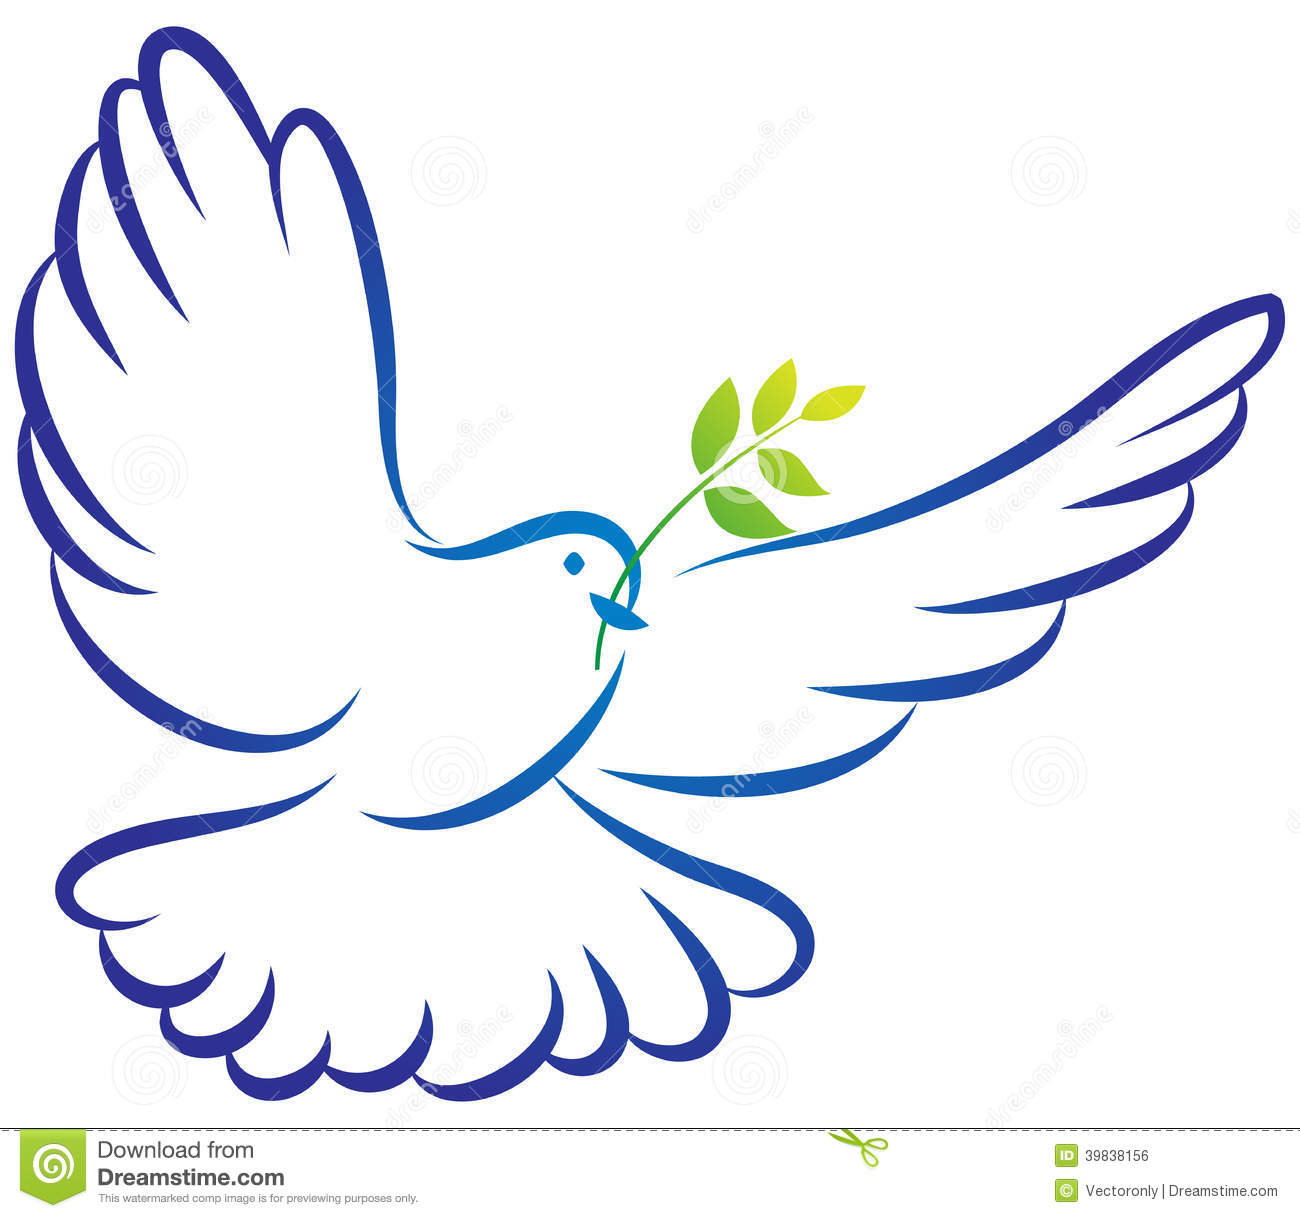 Vector illustration of peace dove on white background.